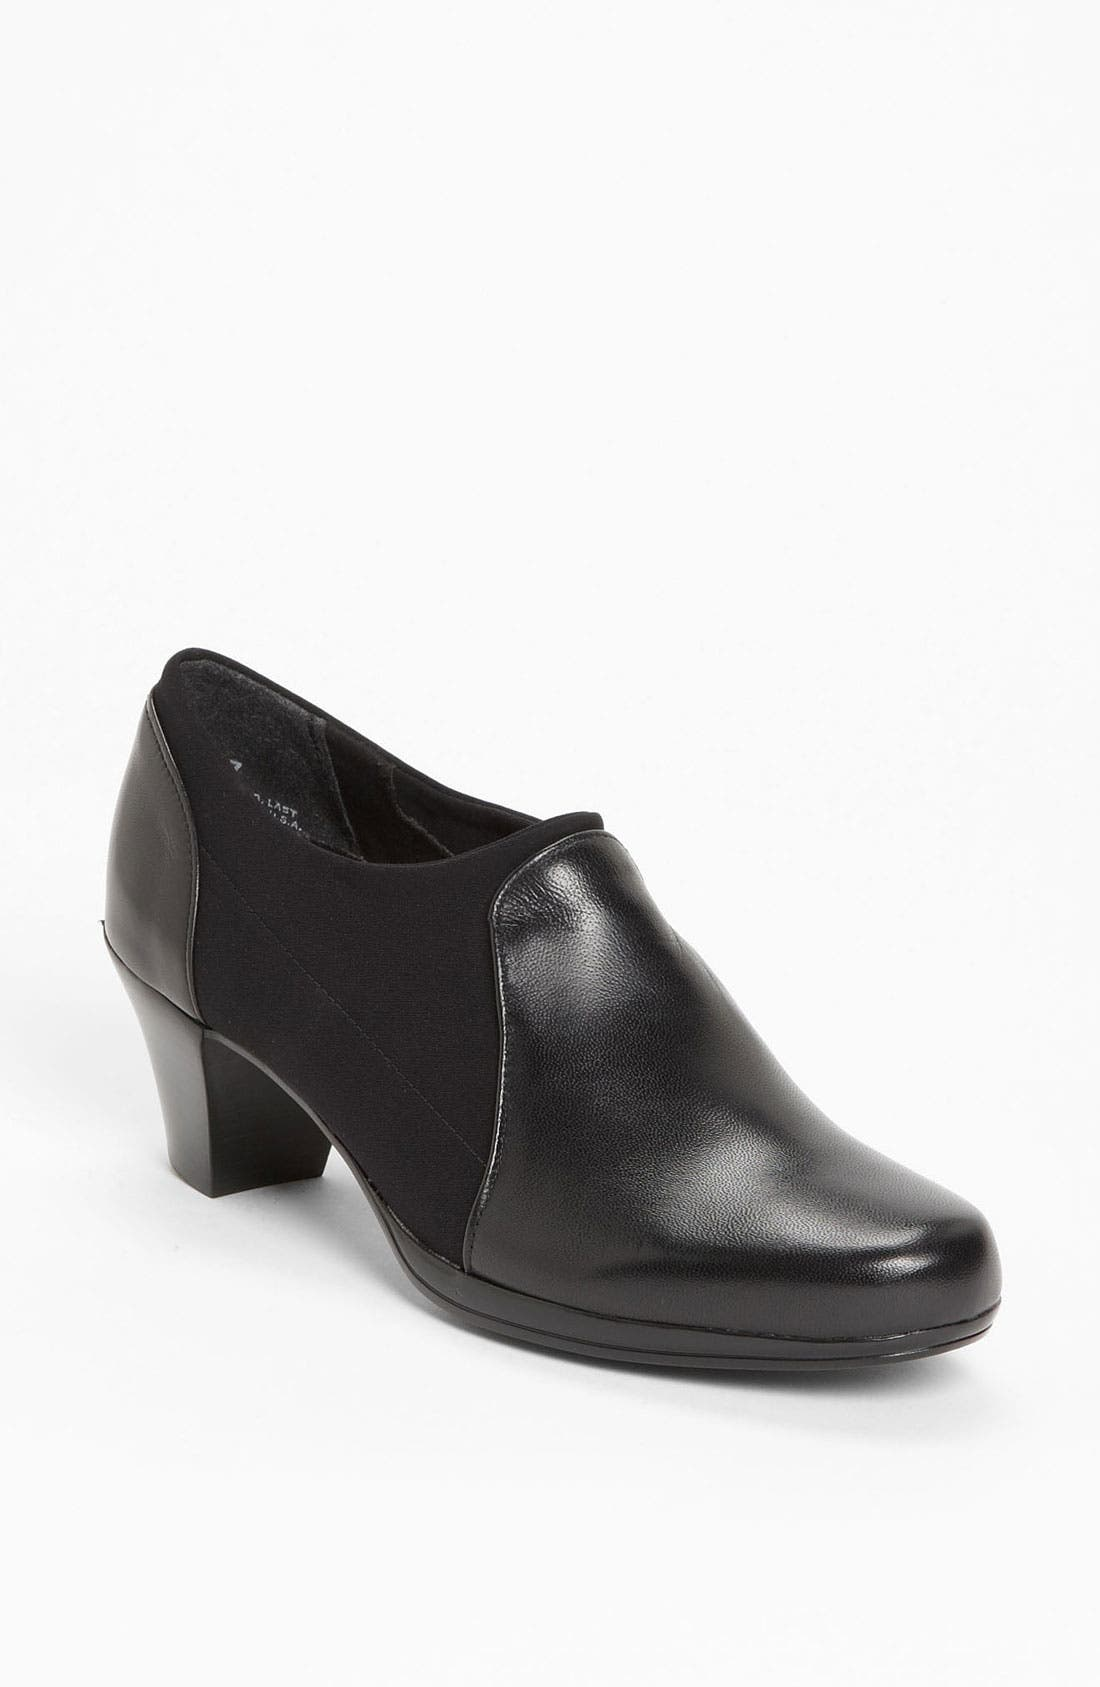 Alternate Image 1 Selected - Munro 'Pria' Stretch Bootie (Women)